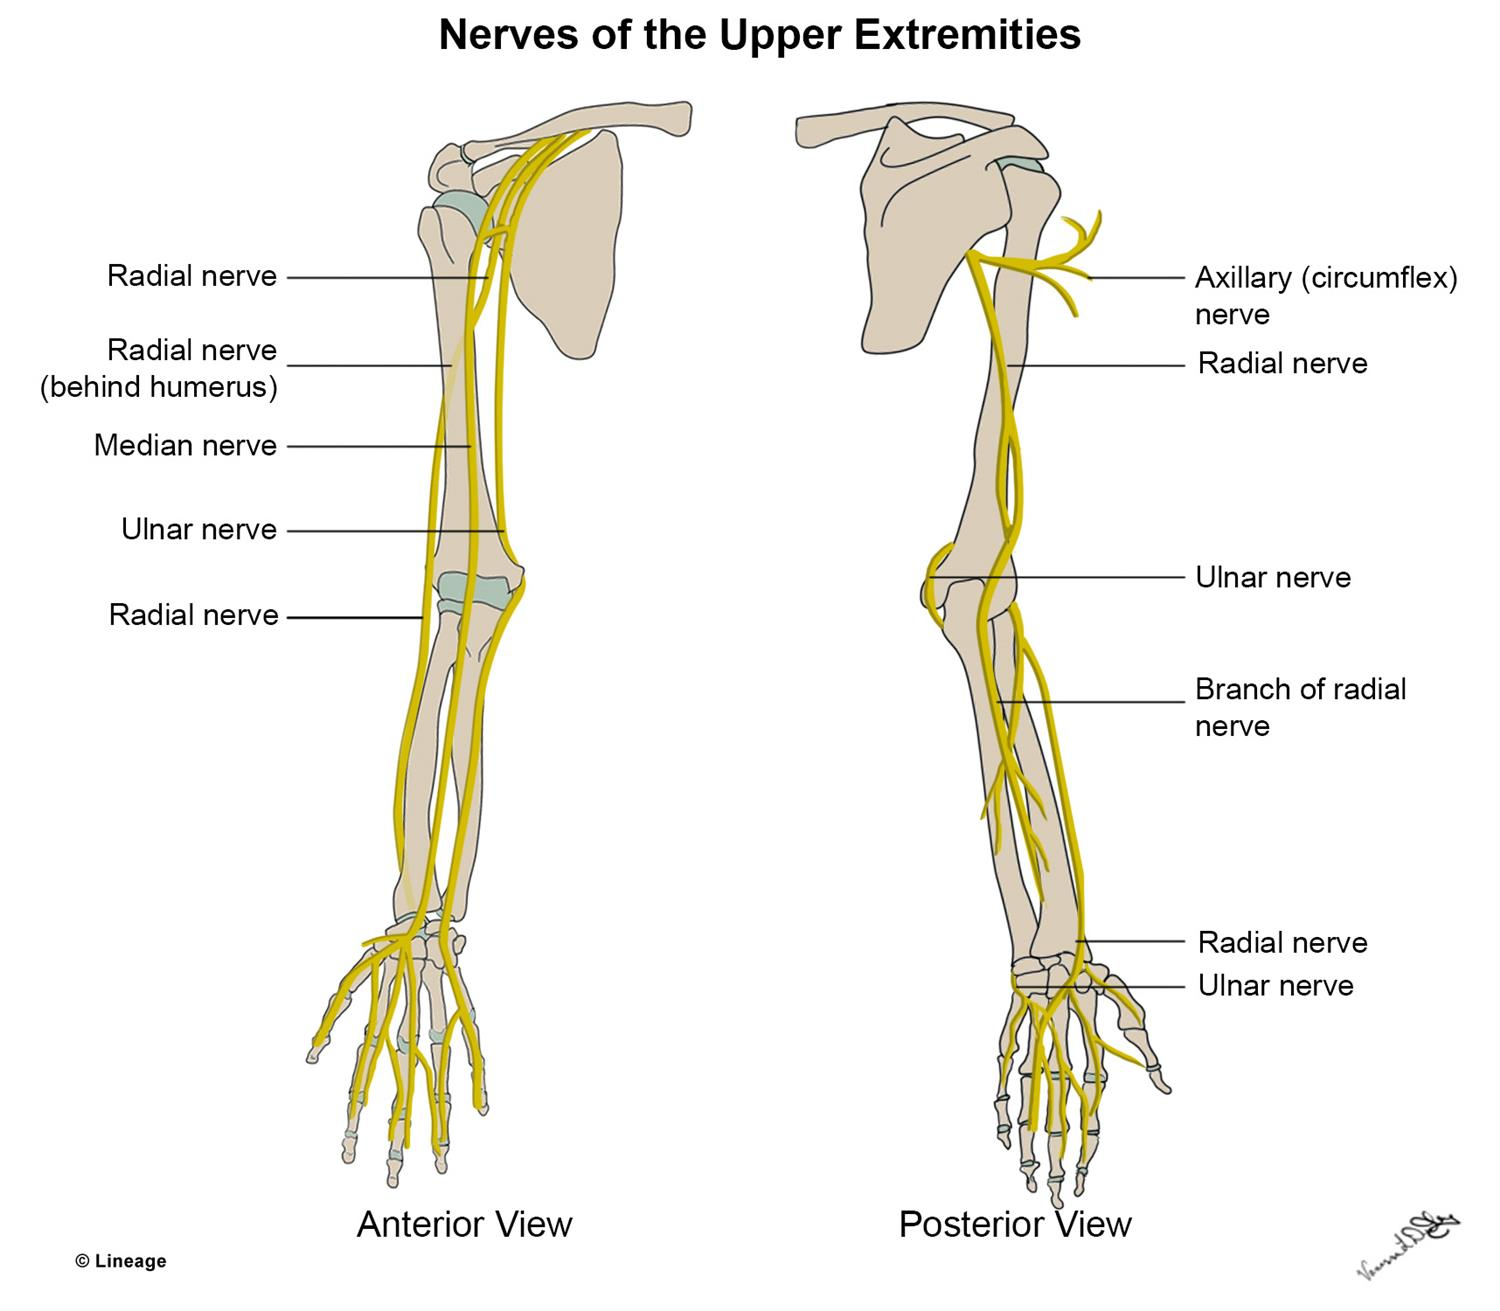 Upper Extremity Nerves - MSK - Medbullets Step 1